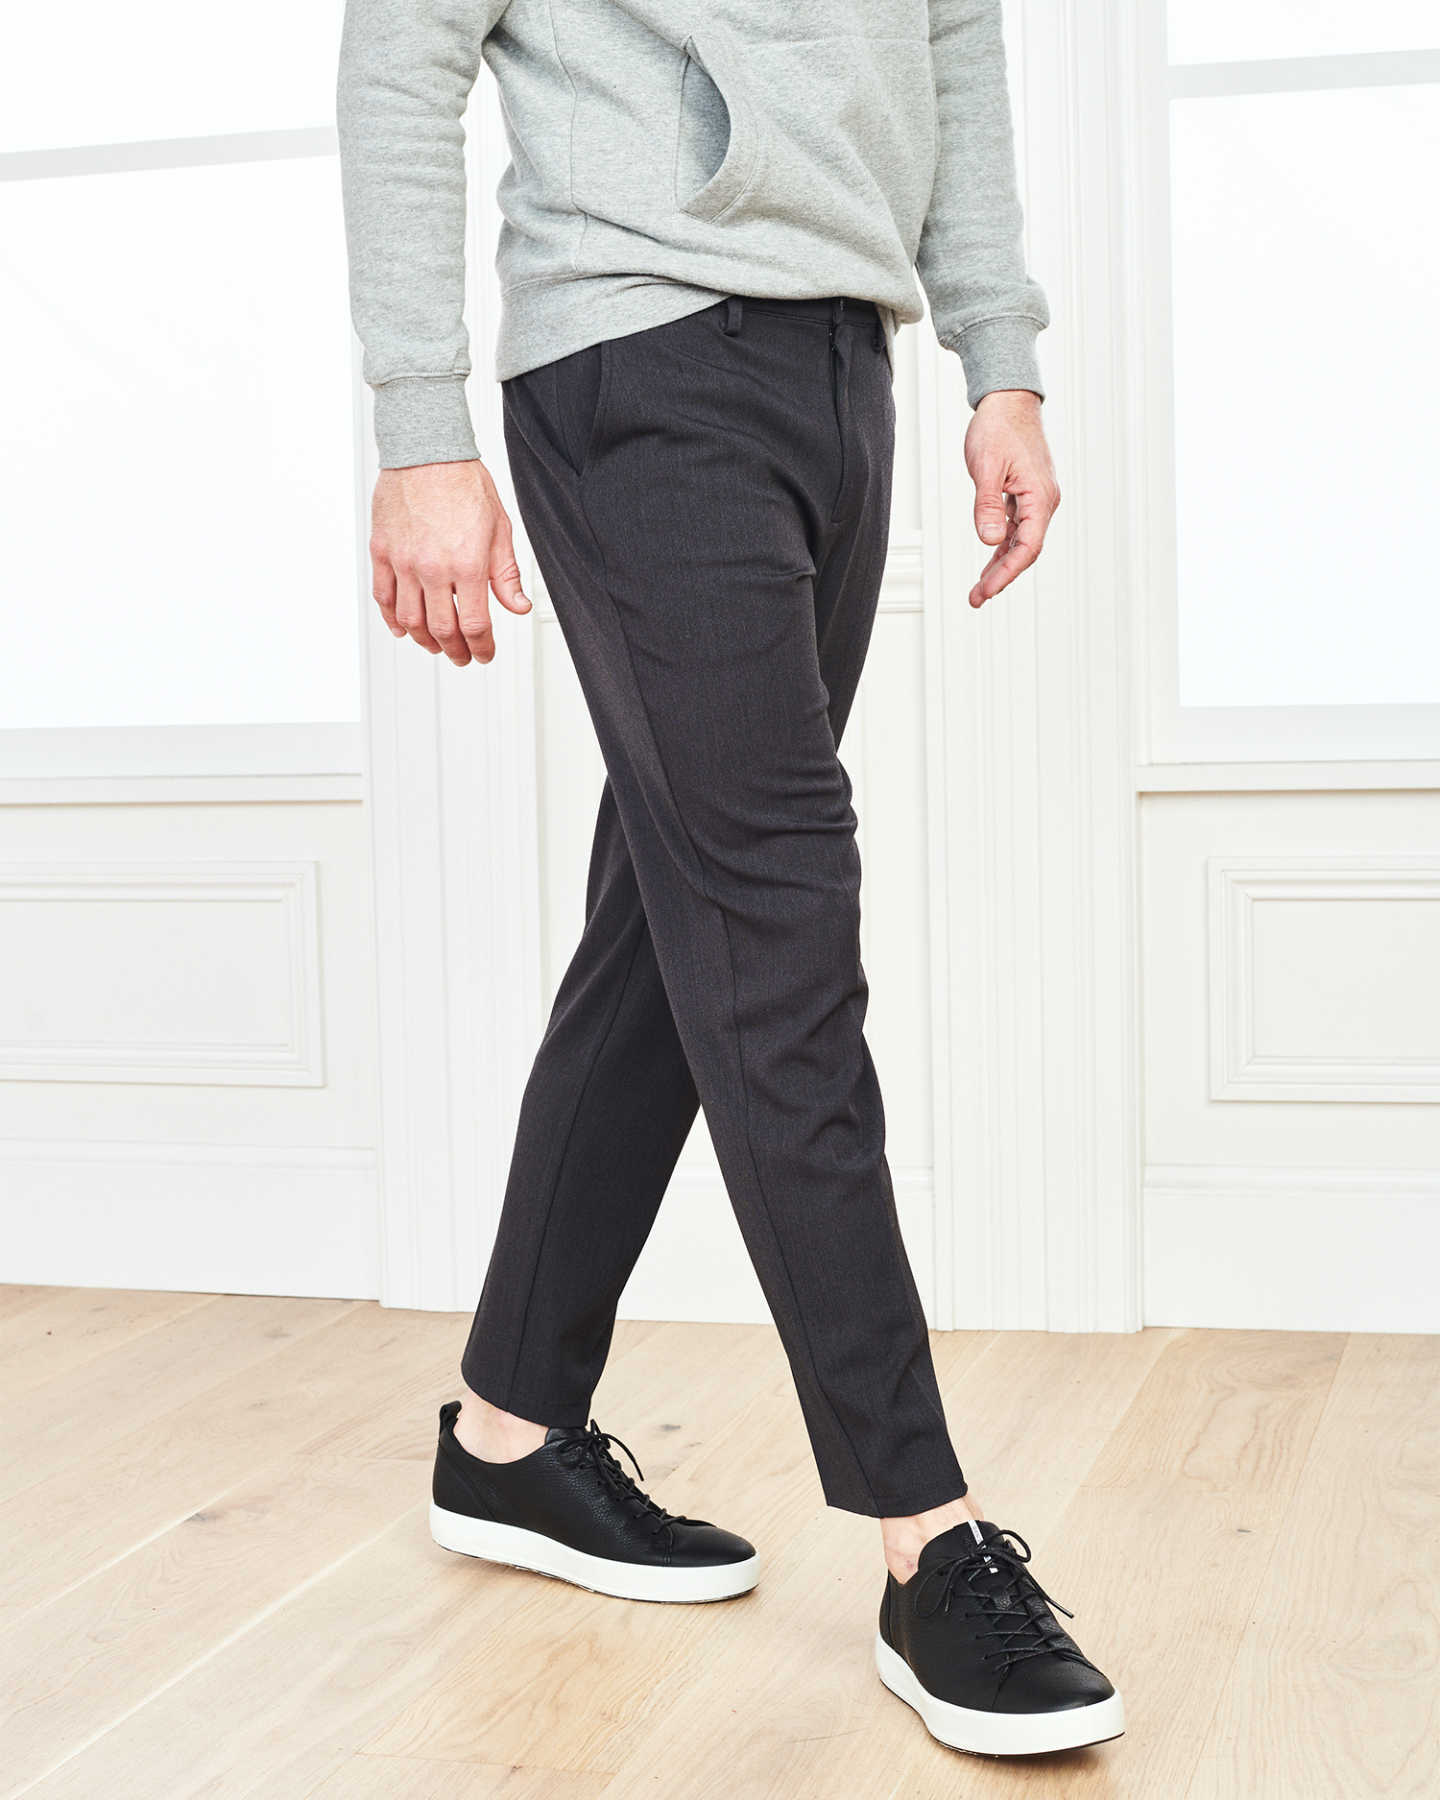 Pair With - Ultra-Stretch 24/7 Smart Pant - Dark Charcoal